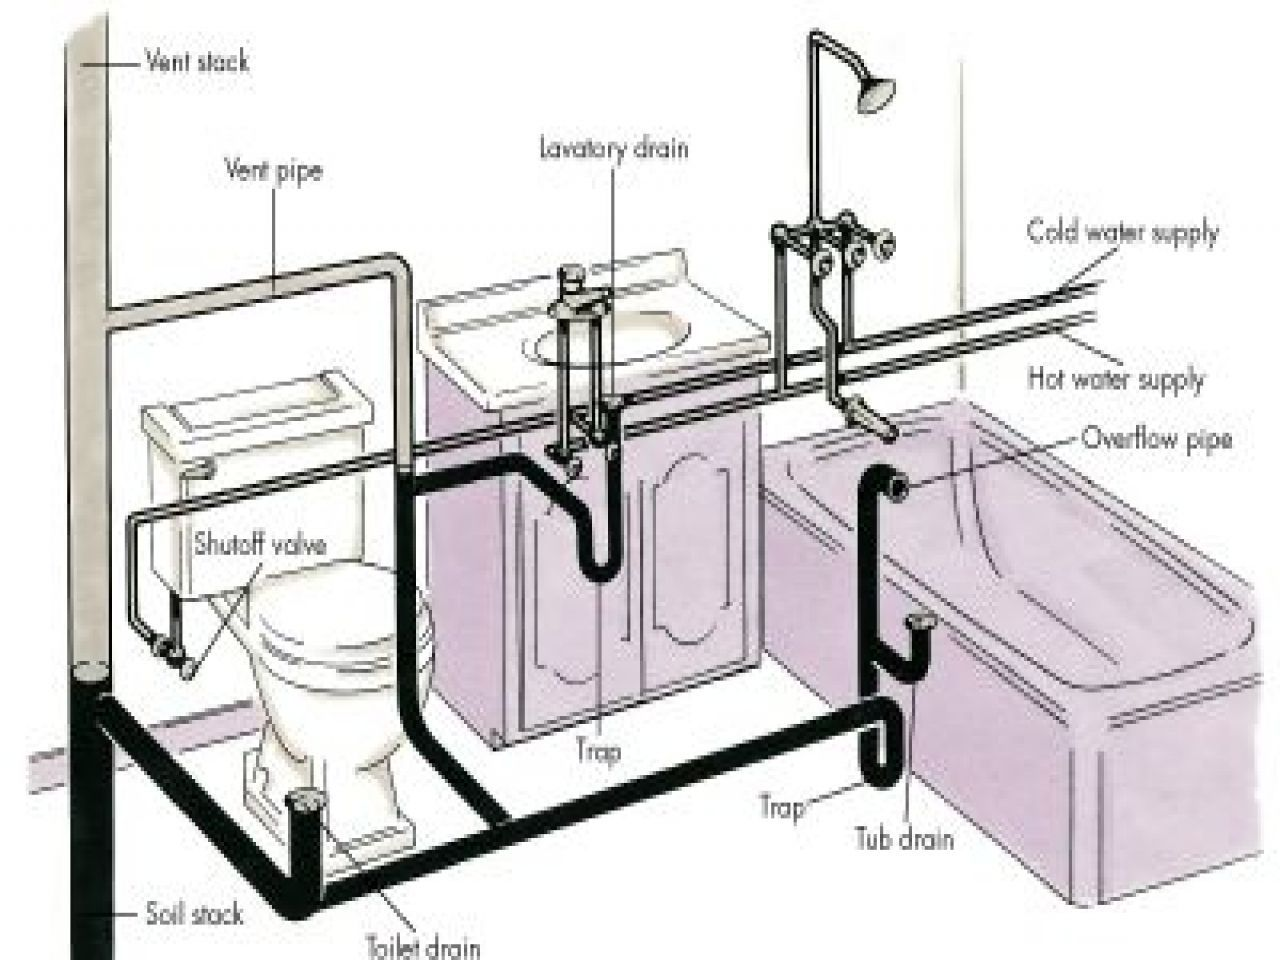 Image Result For Corner Shower Rough Plumbing Dimensions Bathroomtoiletroughindimensions Bathroom Plumbing Diy Plumbing Plumbing